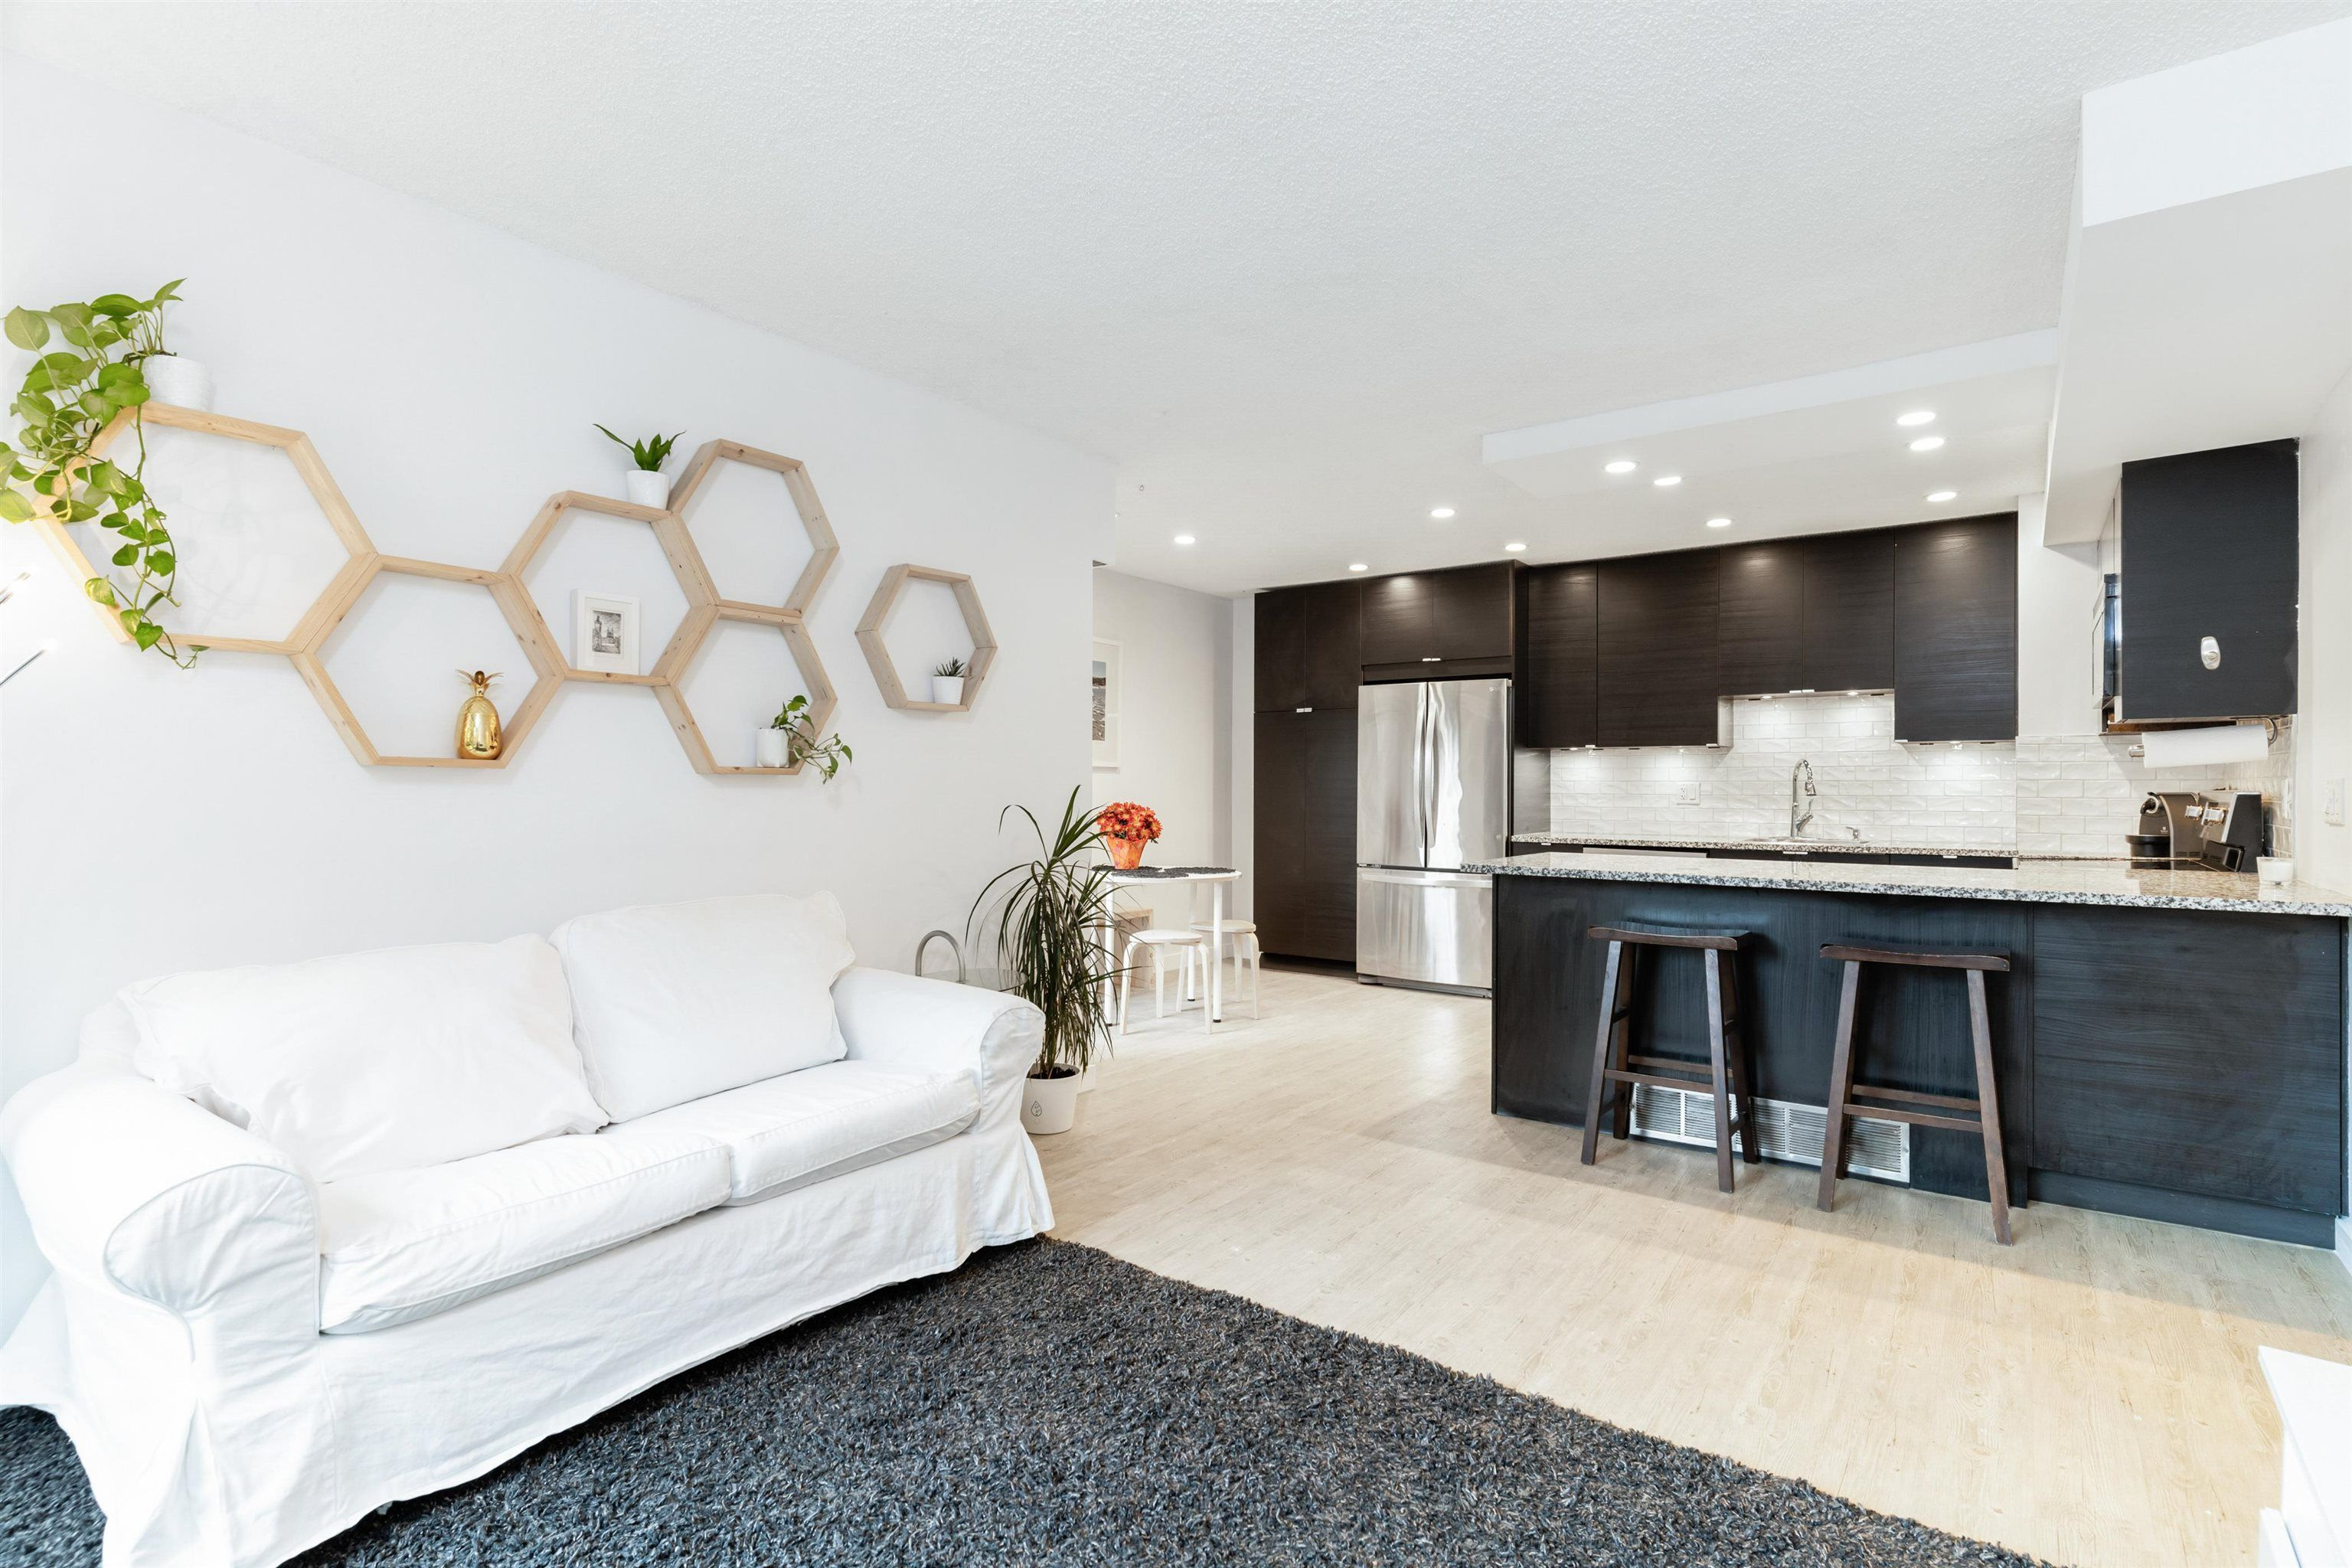 """Main Photo: 1968 PURCELL Way in North Vancouver: Lynnmour Townhouse for sale in """"PURCELL WOODS"""" : MLS®# R2624092"""